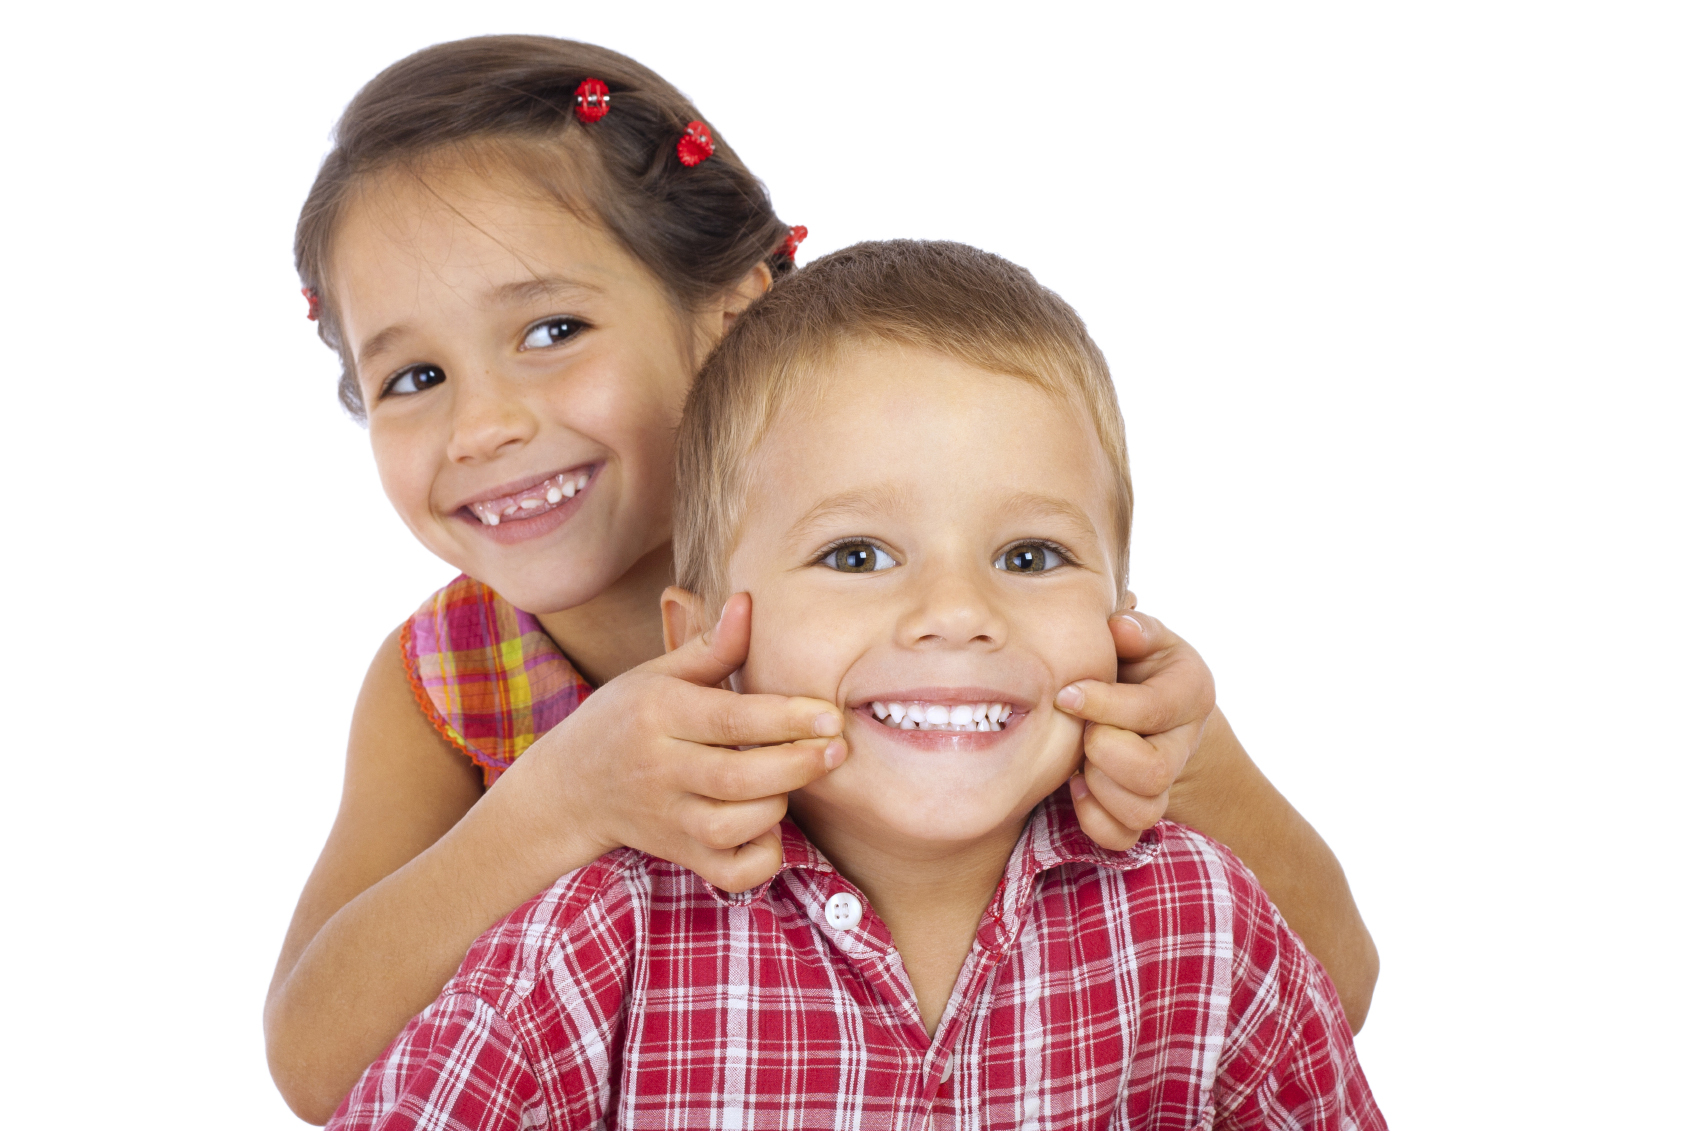 free kids dental - Free Images Of Kids